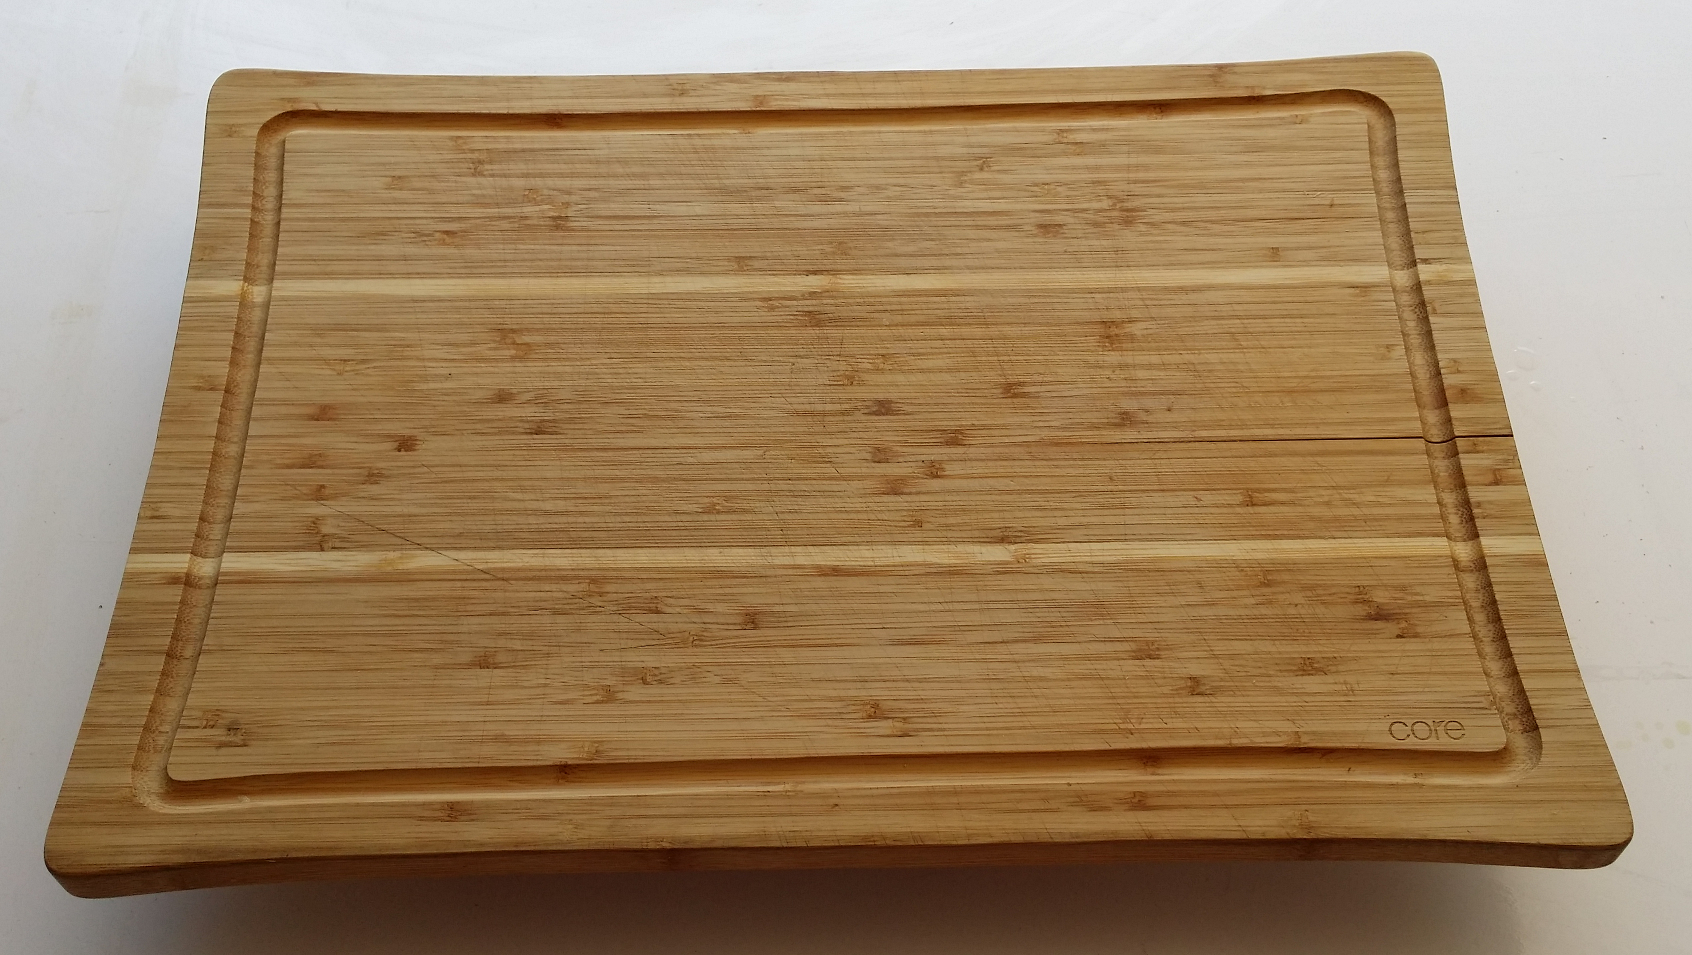 I Use This Cutting Board Periodically Countertop Cutting Board Diary Of A Wood Nerd